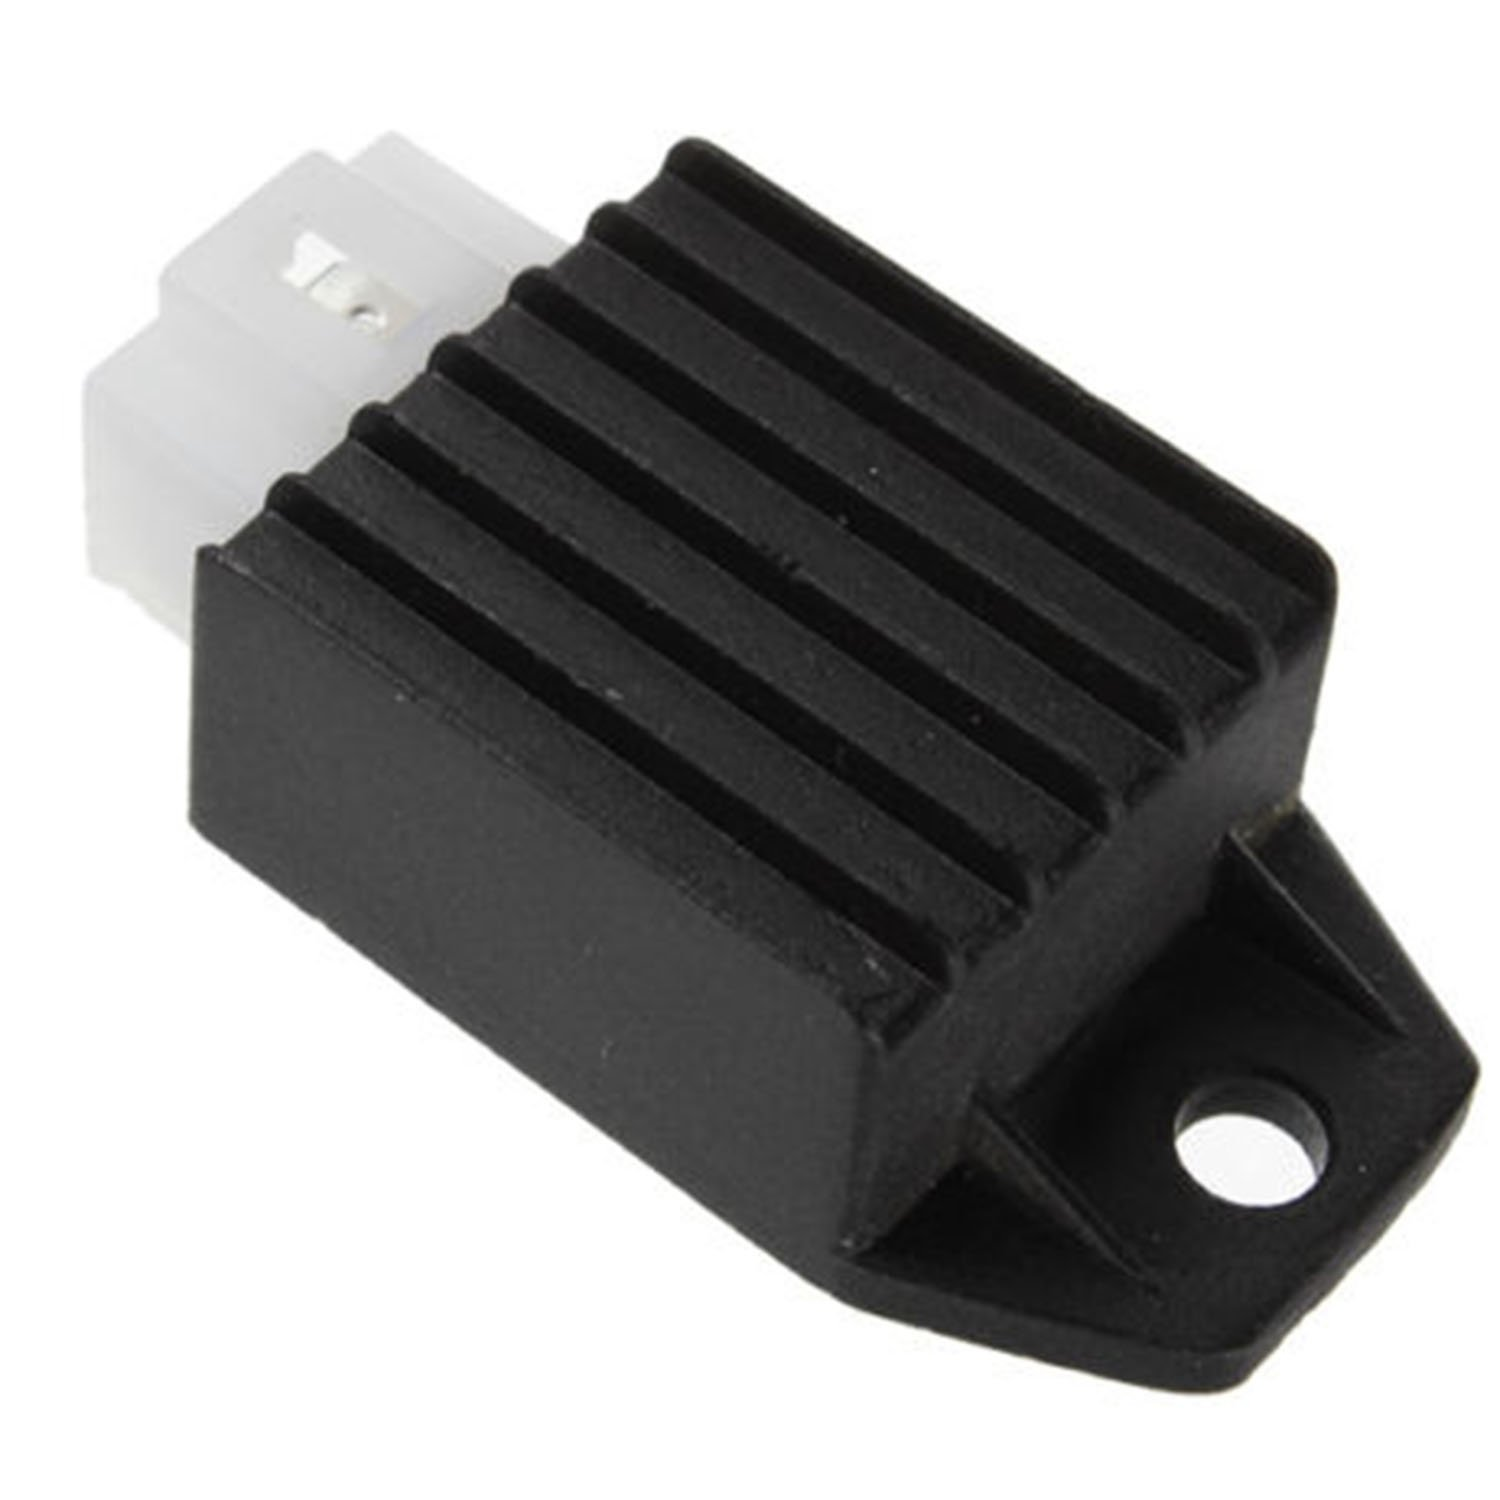 Podoy 150cc Voltage Regulator Rectifier For Sunl Taotao Chinese Atv Wiring Harness 4 Wire Parts 50 110cc Scooter Moped Pin 12v 1u1058 Rectifiers Automotive